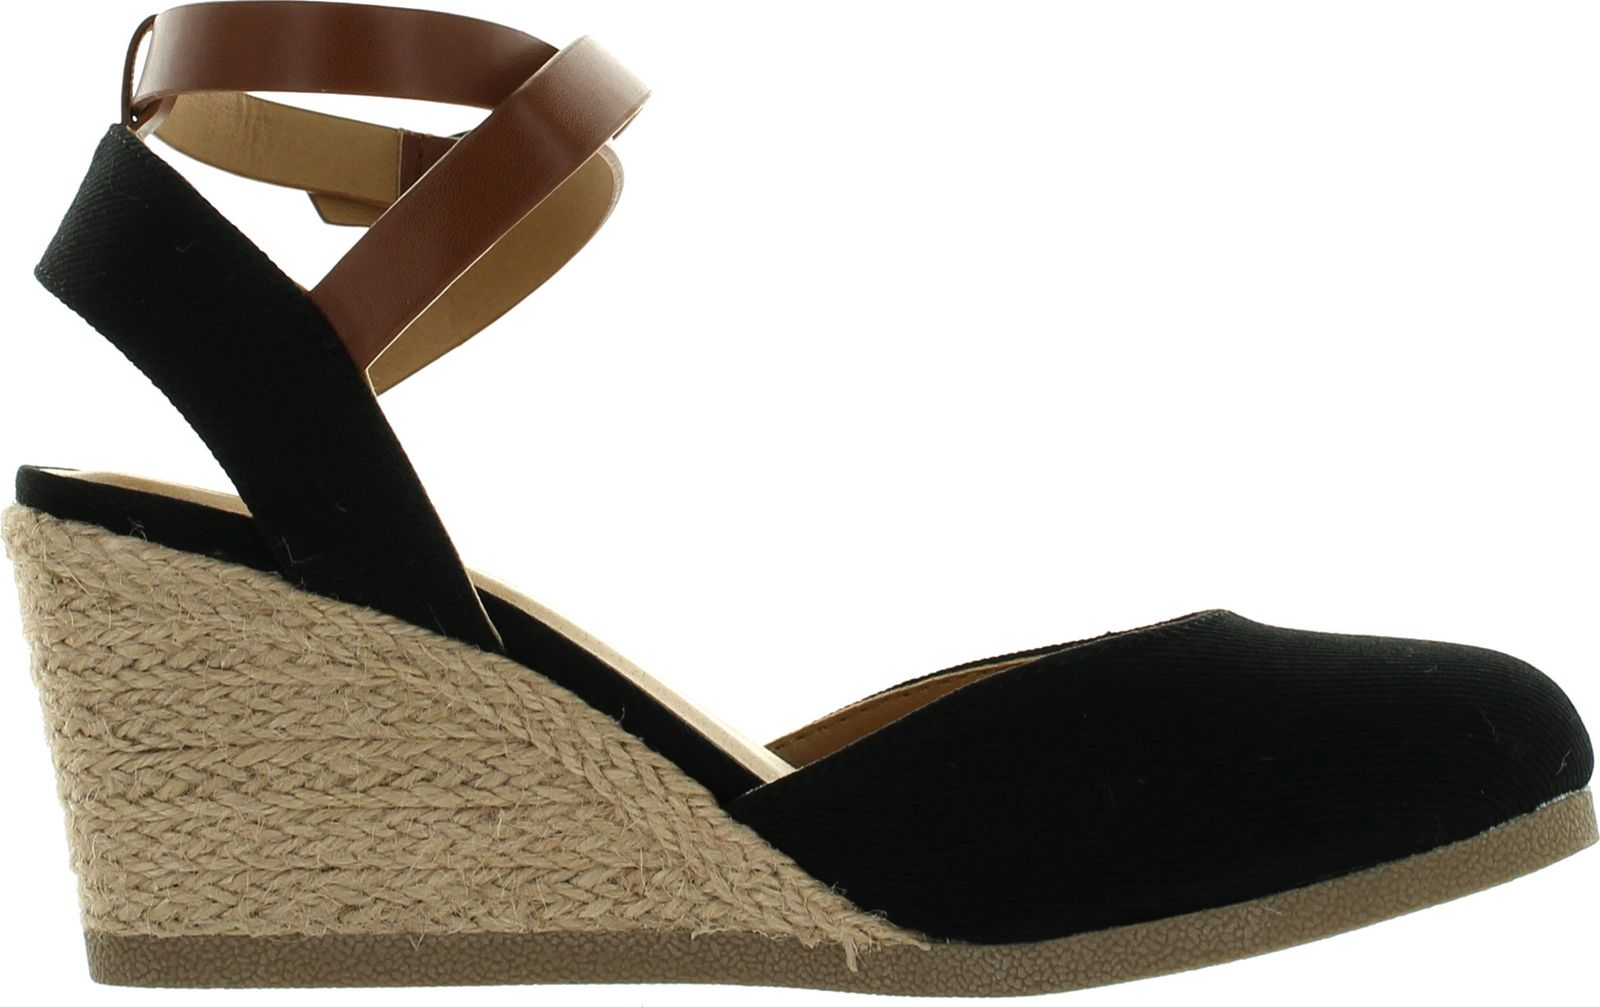 Closed toe wedges, Shoes | 6pm